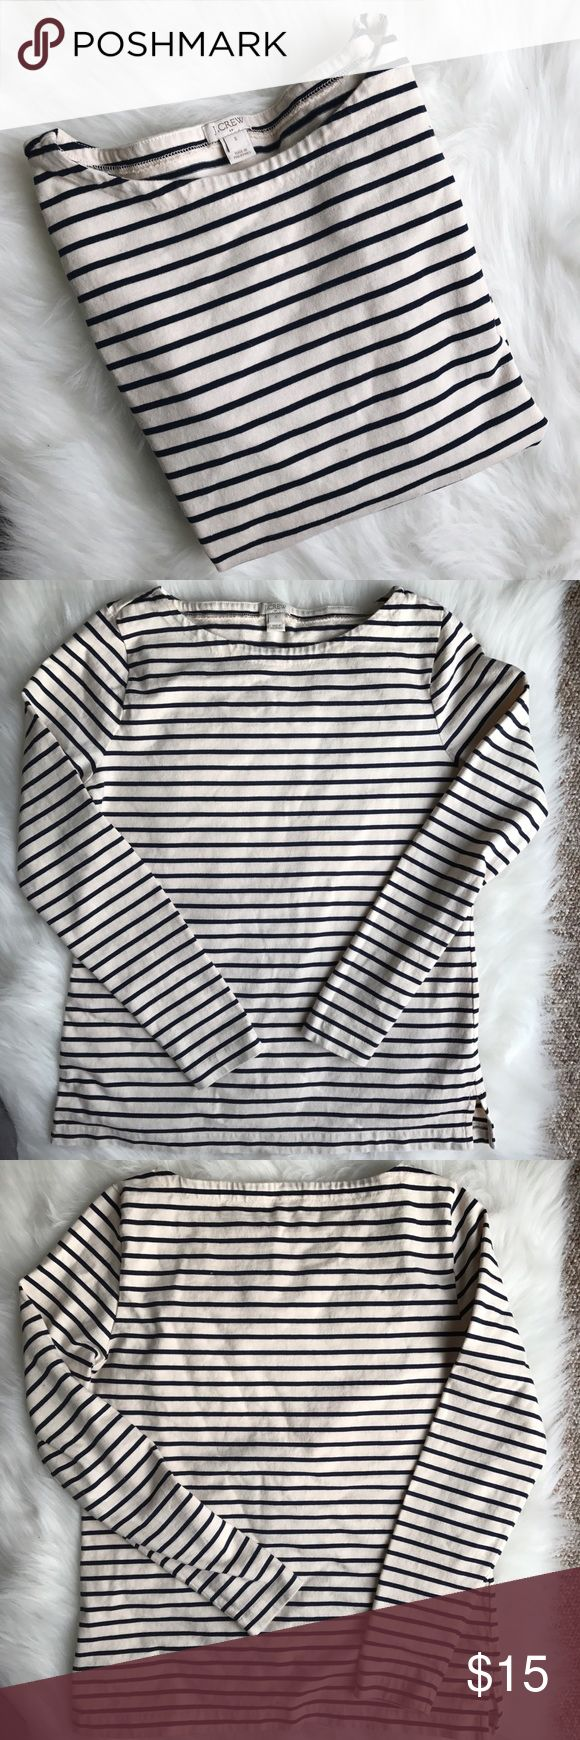 J crew boat neck long sleeve top Cream and navy but can appear cream and black in my pictures or from afar. Classic striped long sleeve boat neck top. Only worn once. J. Crew Tops Tees - Long Sleeve